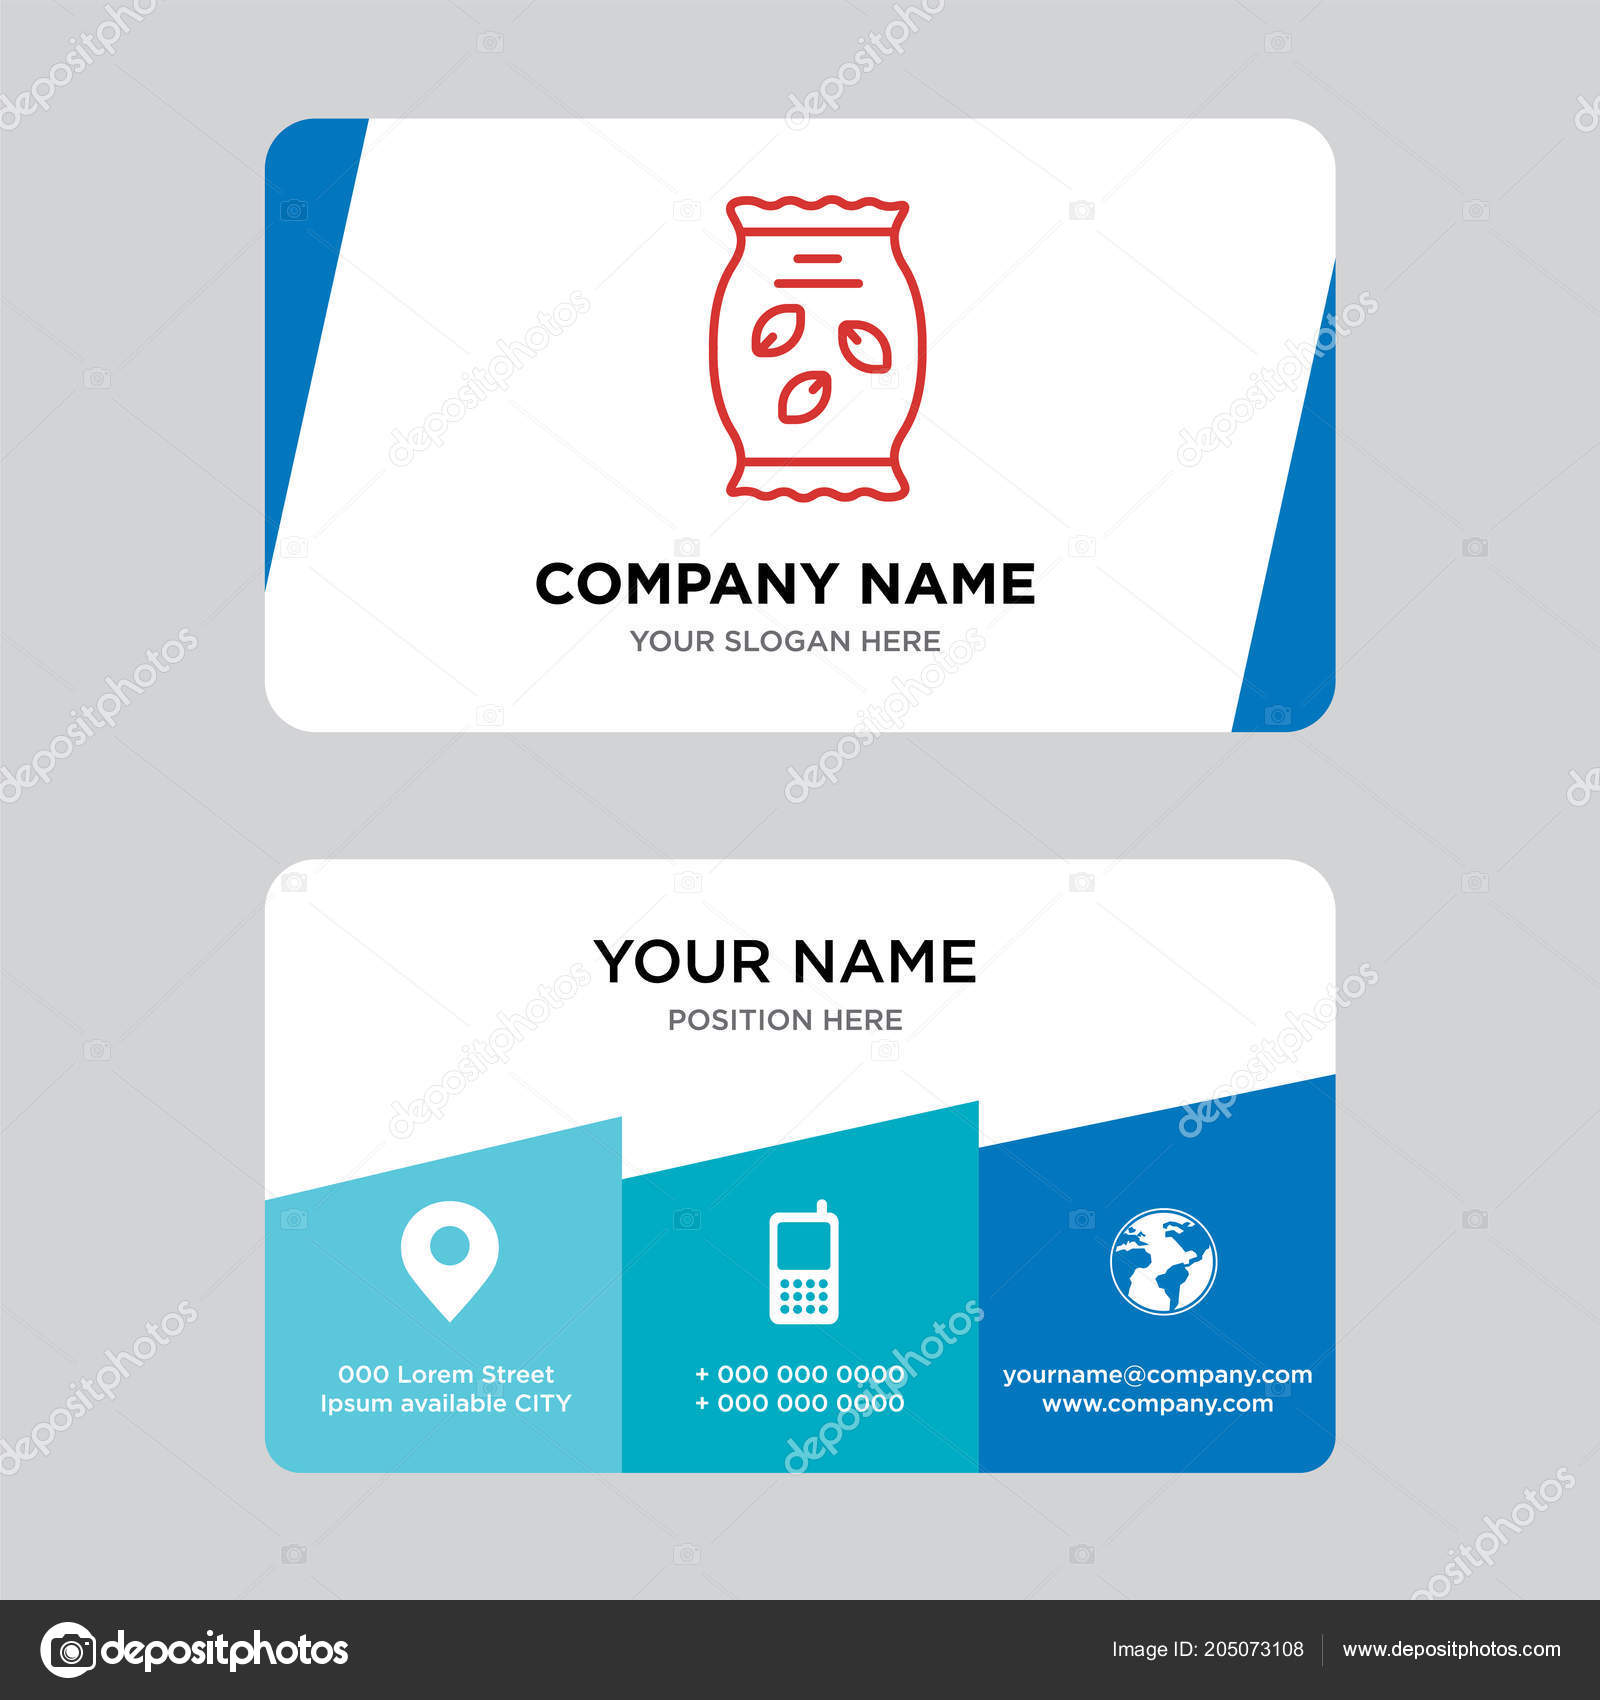 Seeds Business Card Design Template Visiting Your Company Modern